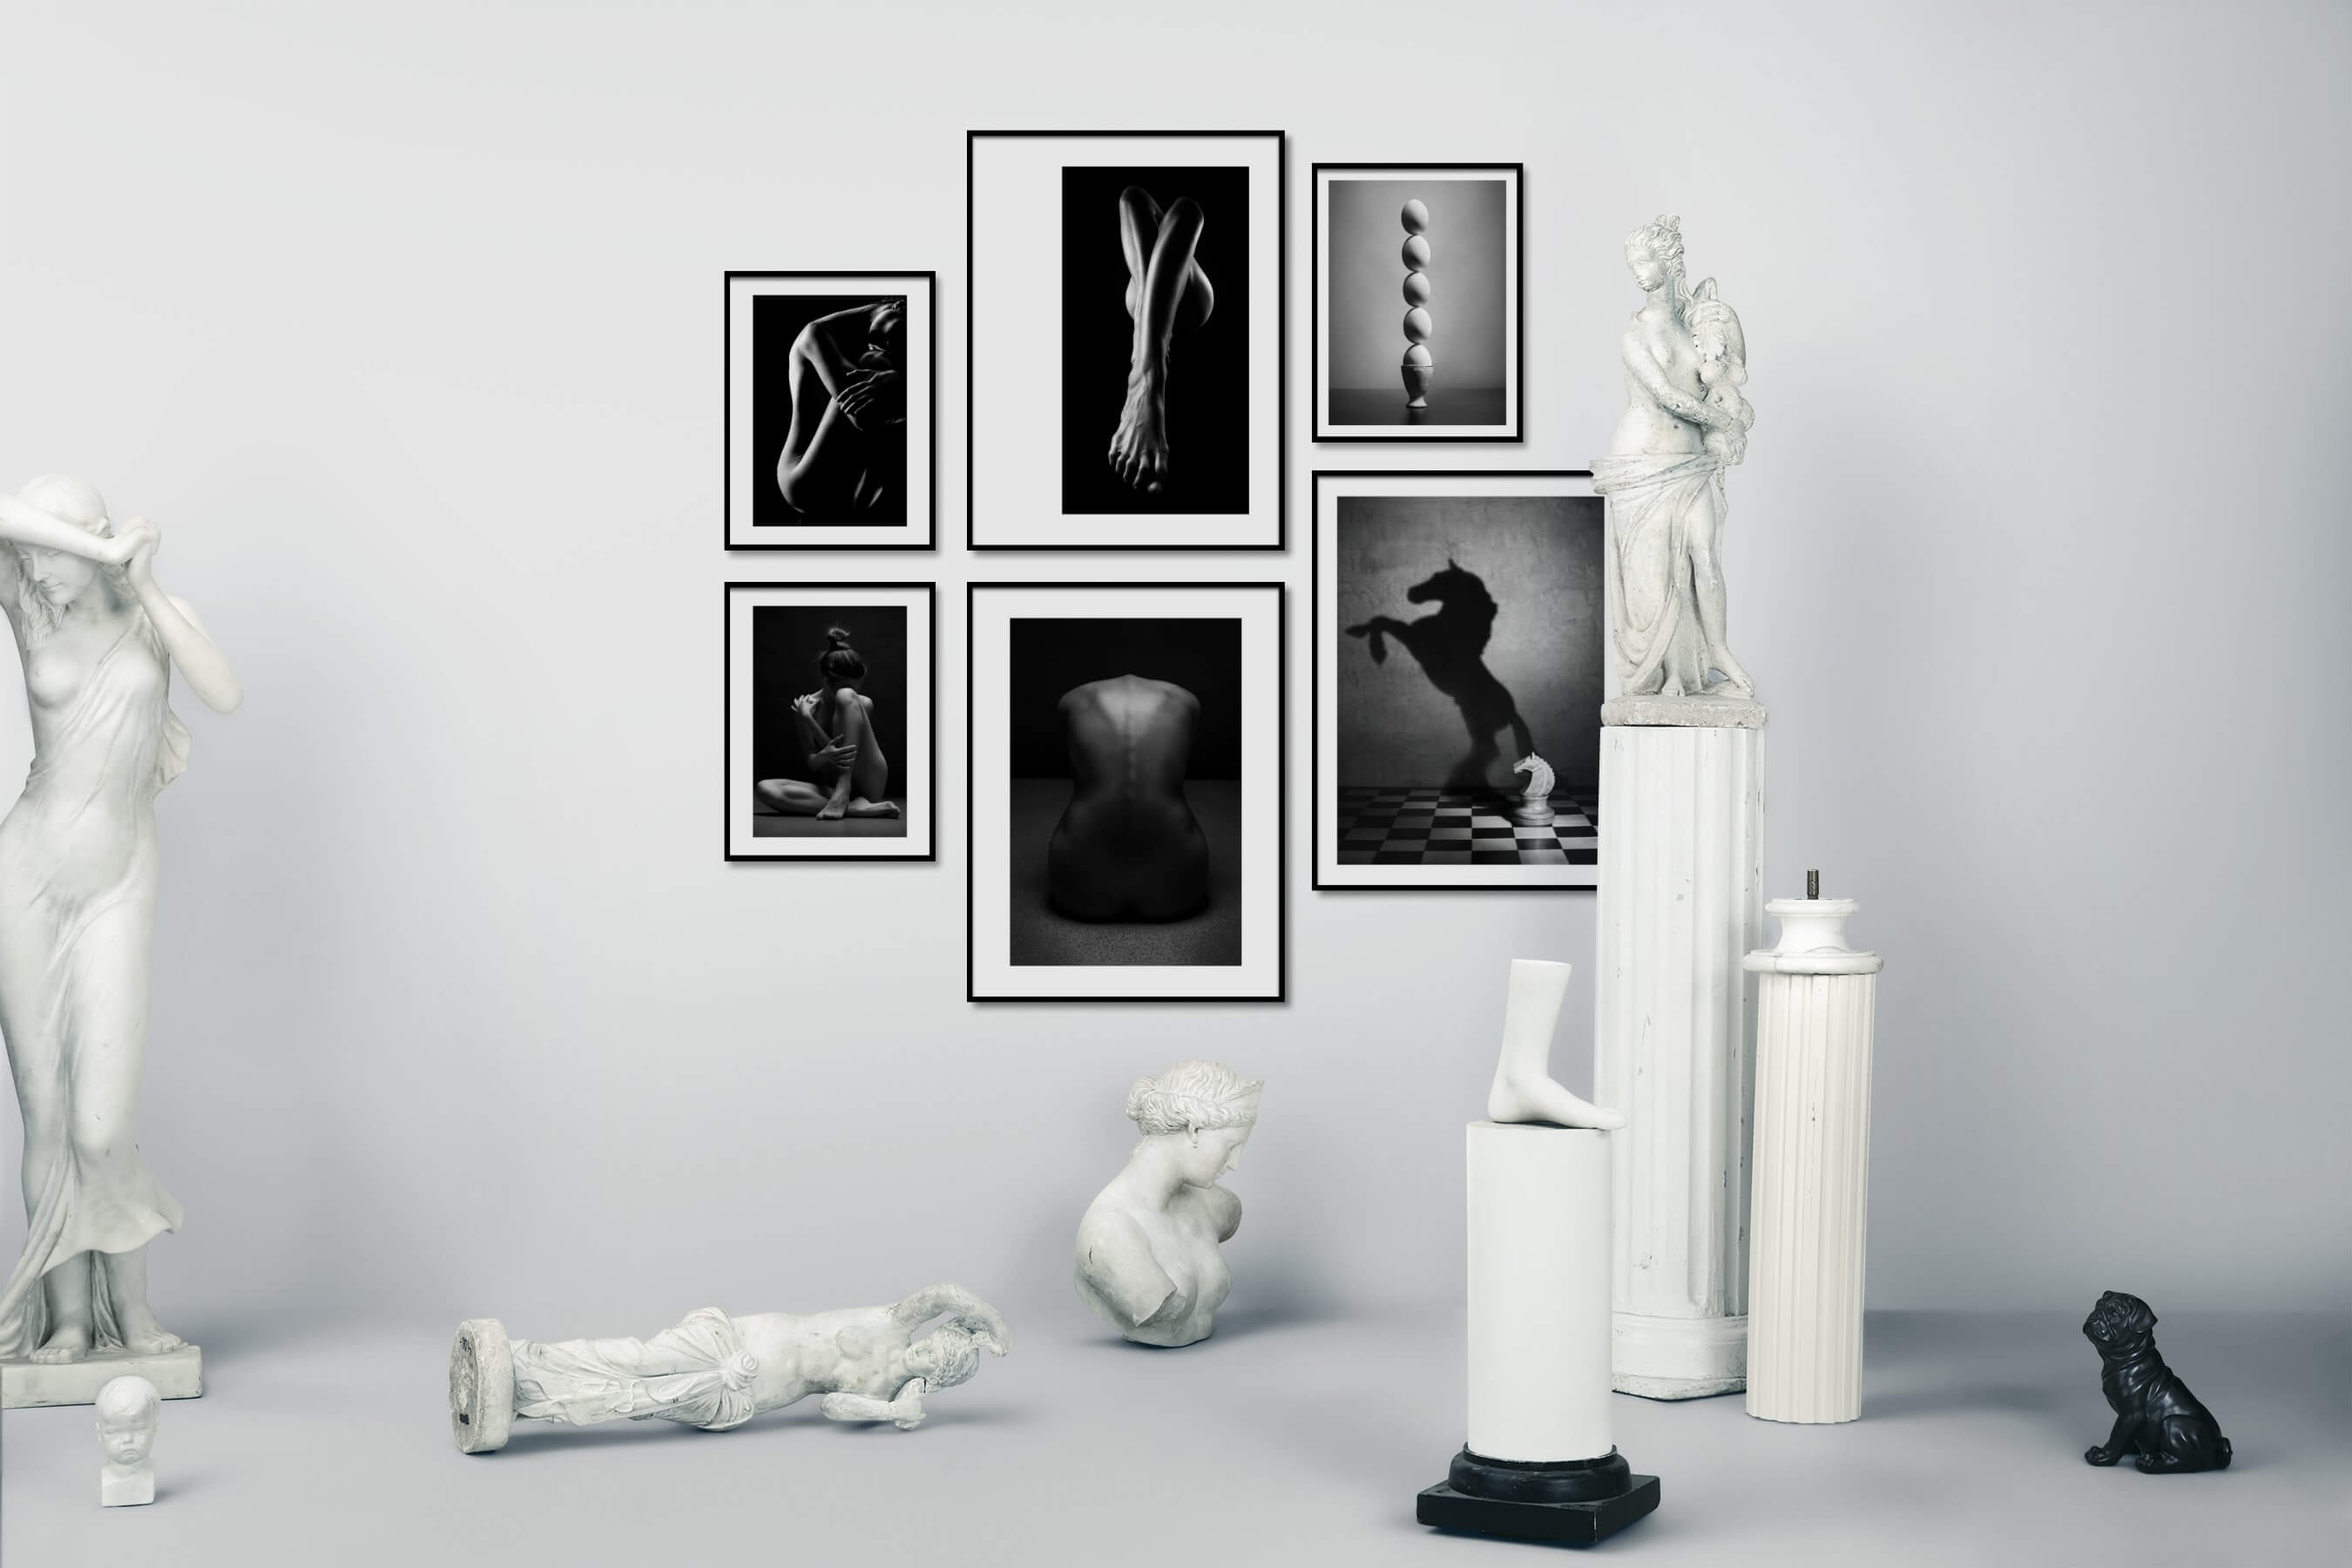 Gallery wall idea with six framed pictures arranged on a wall depicting Fashion & Beauty, Black & White, For the Minimalist, Artsy, and Animals